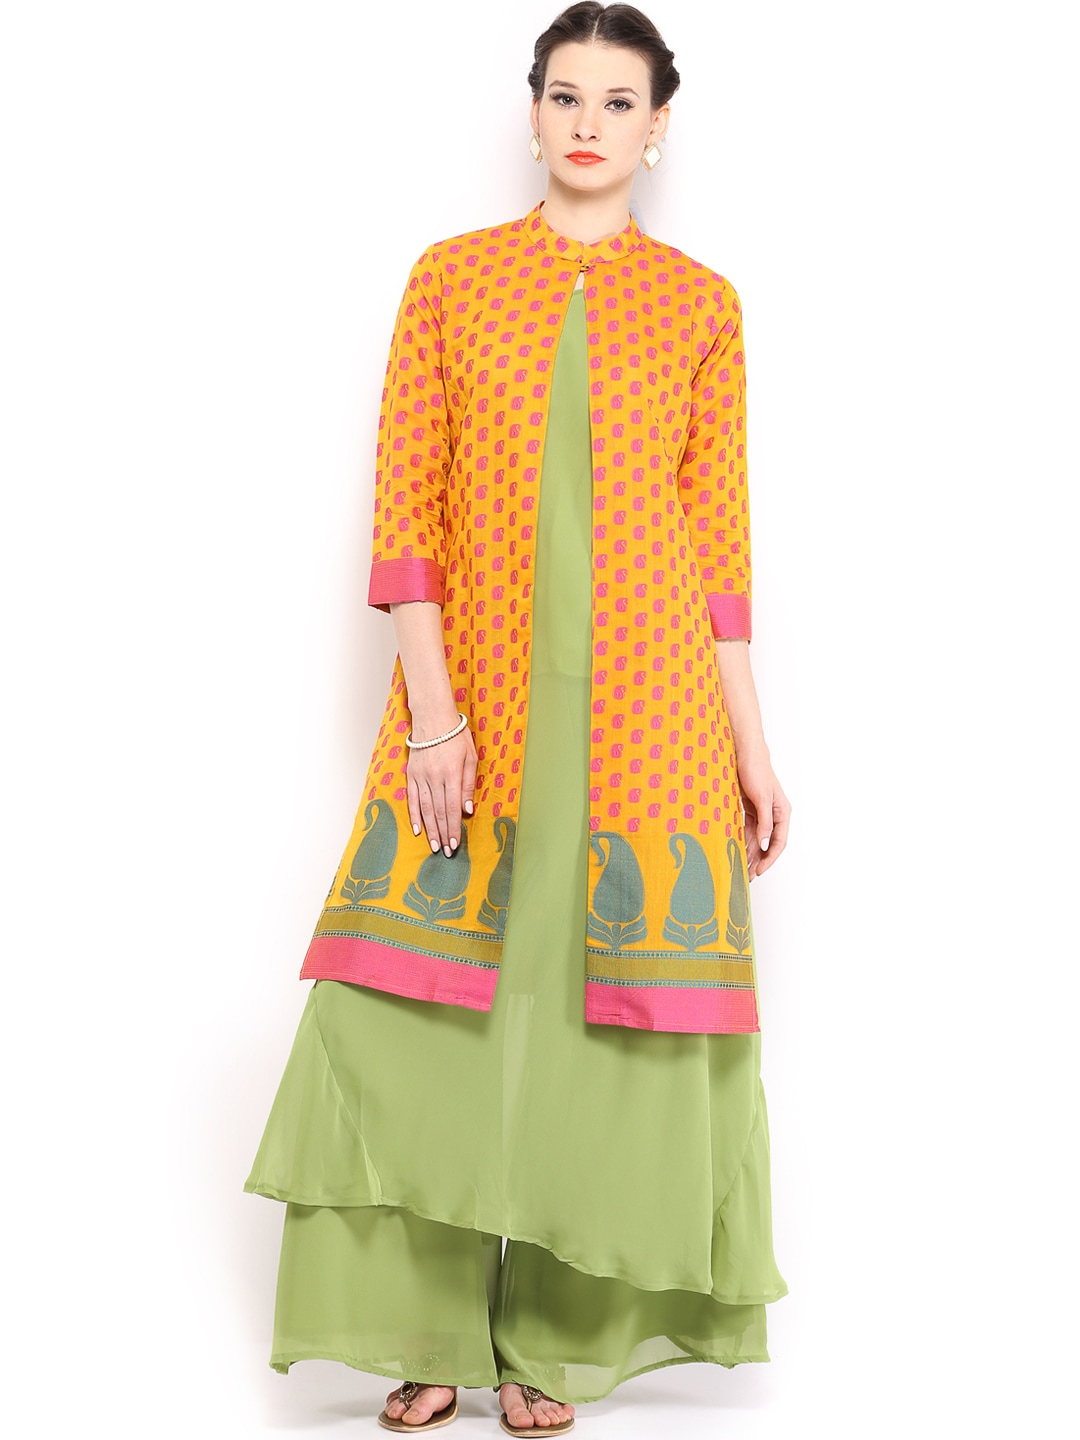 Wonderful Offering A Delightful Shopping Experience, Abof Has A Wide Range Of Womens Clothing For You To Choose From Find The Latest In Fashion From Ethnic Wear To Casual Outfits To Accessories On Abof Kurtis Are Here To Stay And Nothing Spells